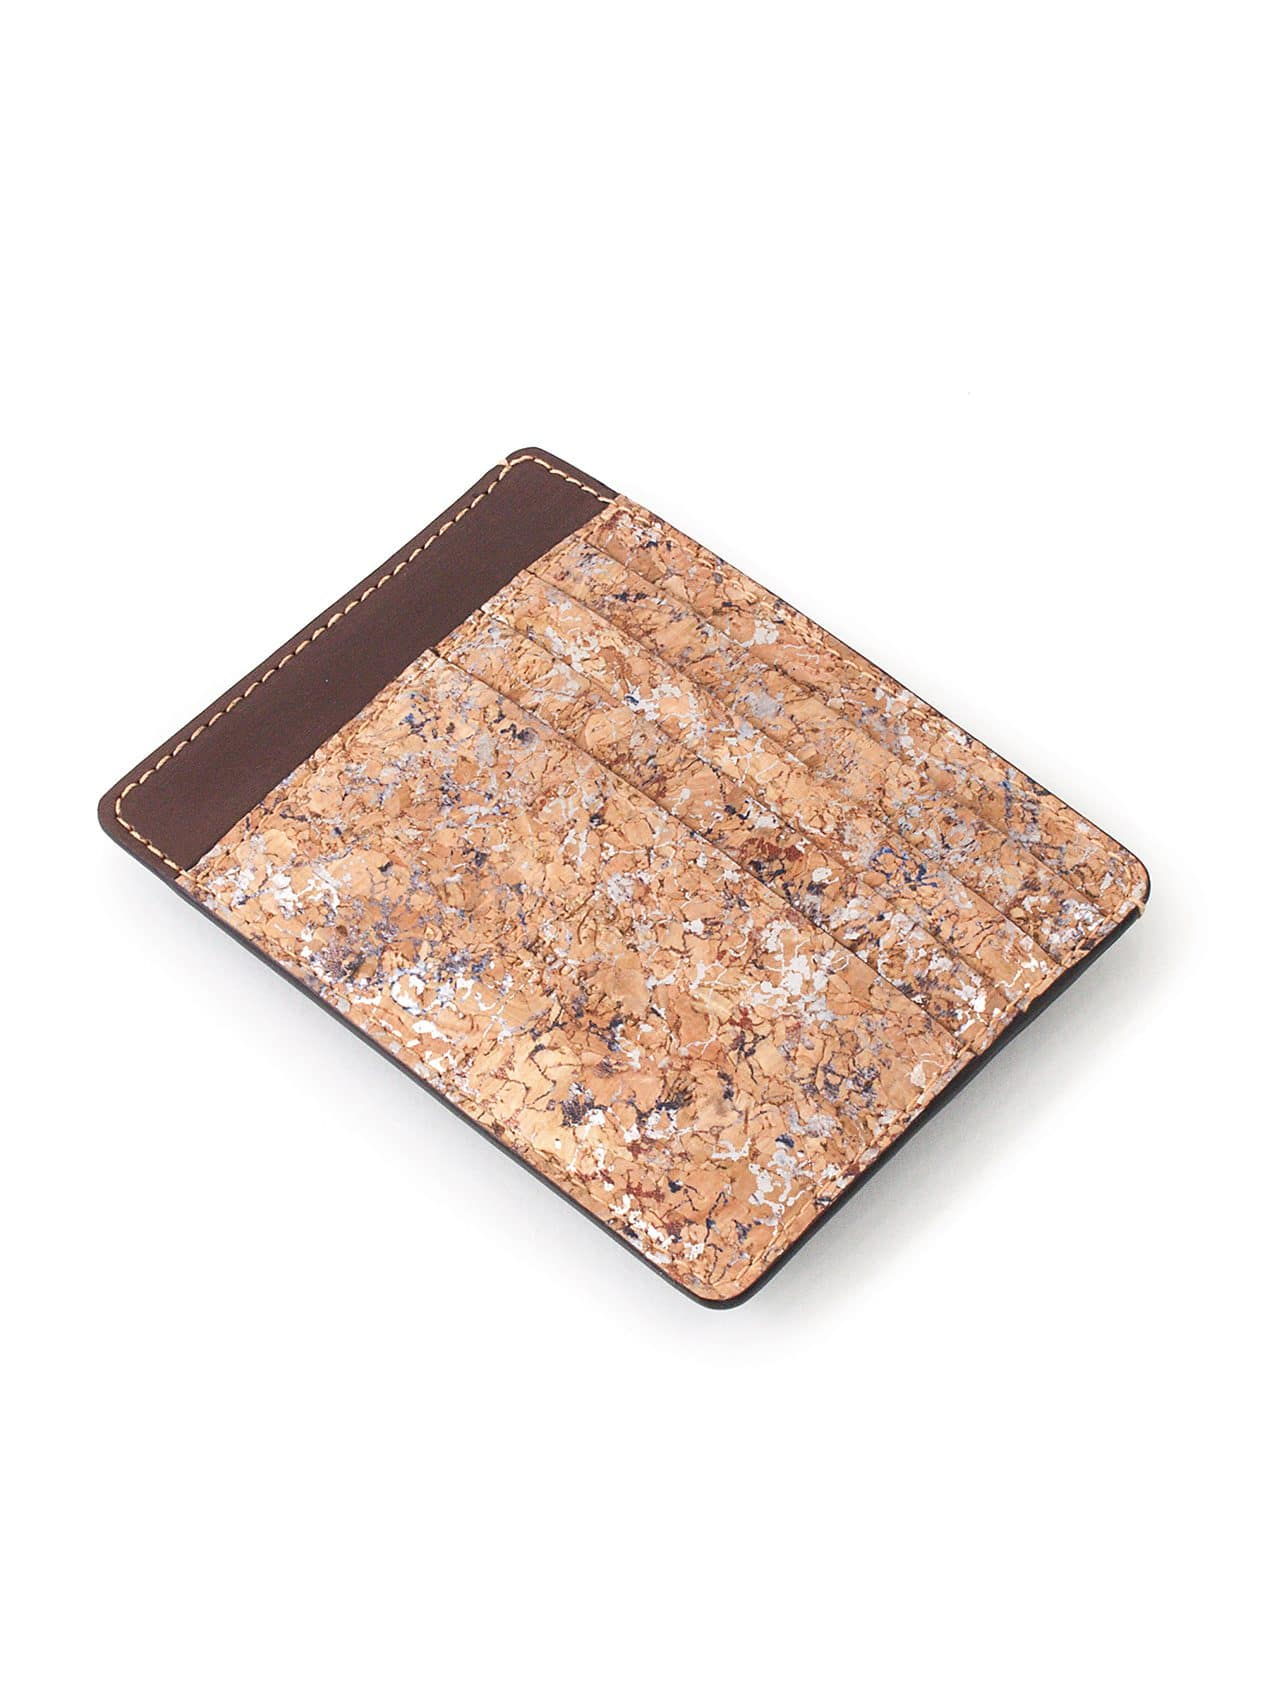 Vagan card holder